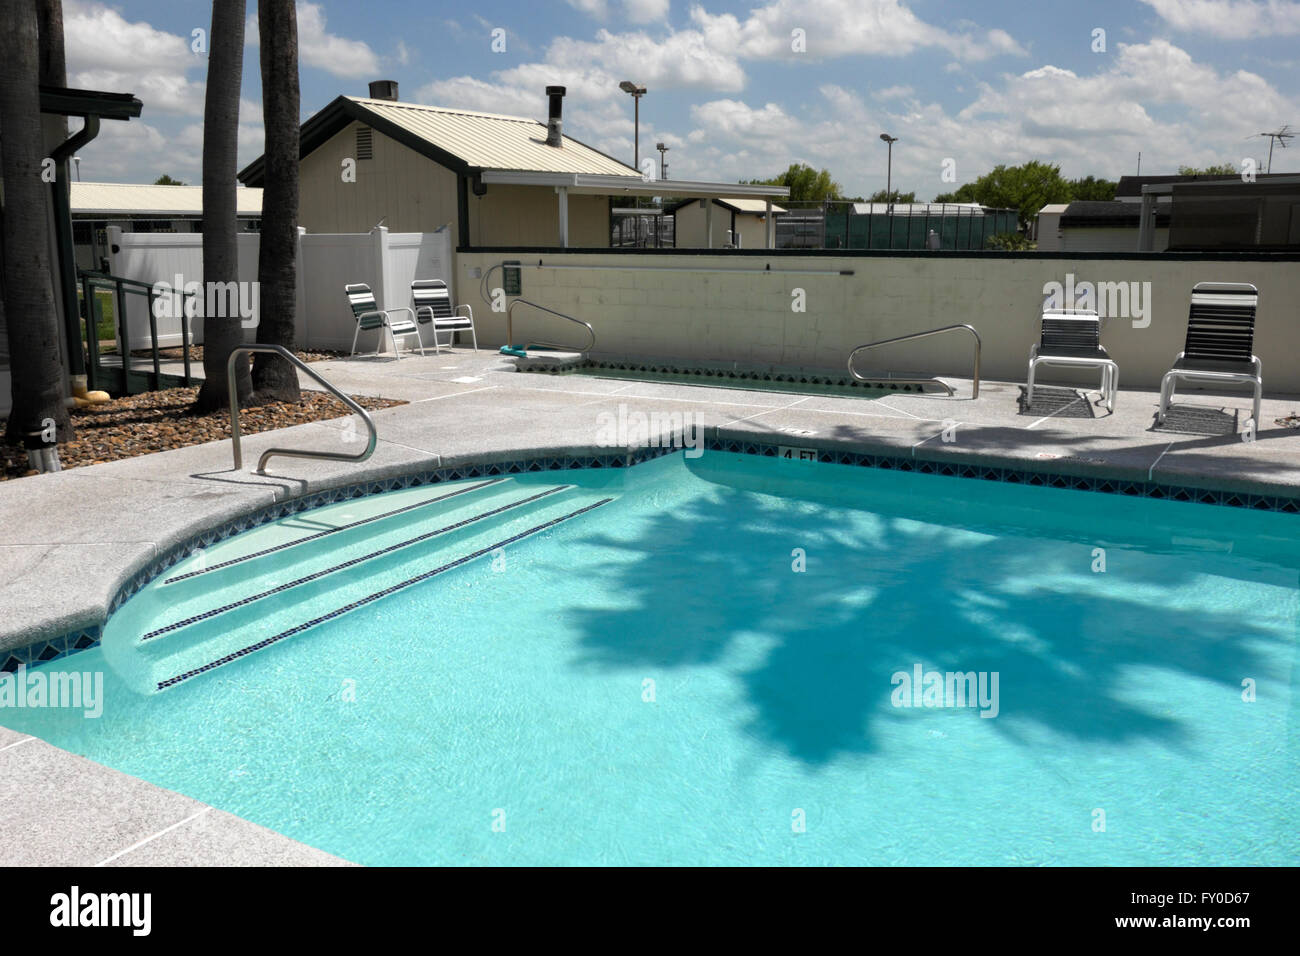 Swimming pool filled with clear aqua blue water at a senior citizens RV resort in south Texas, USA. - Stock Image